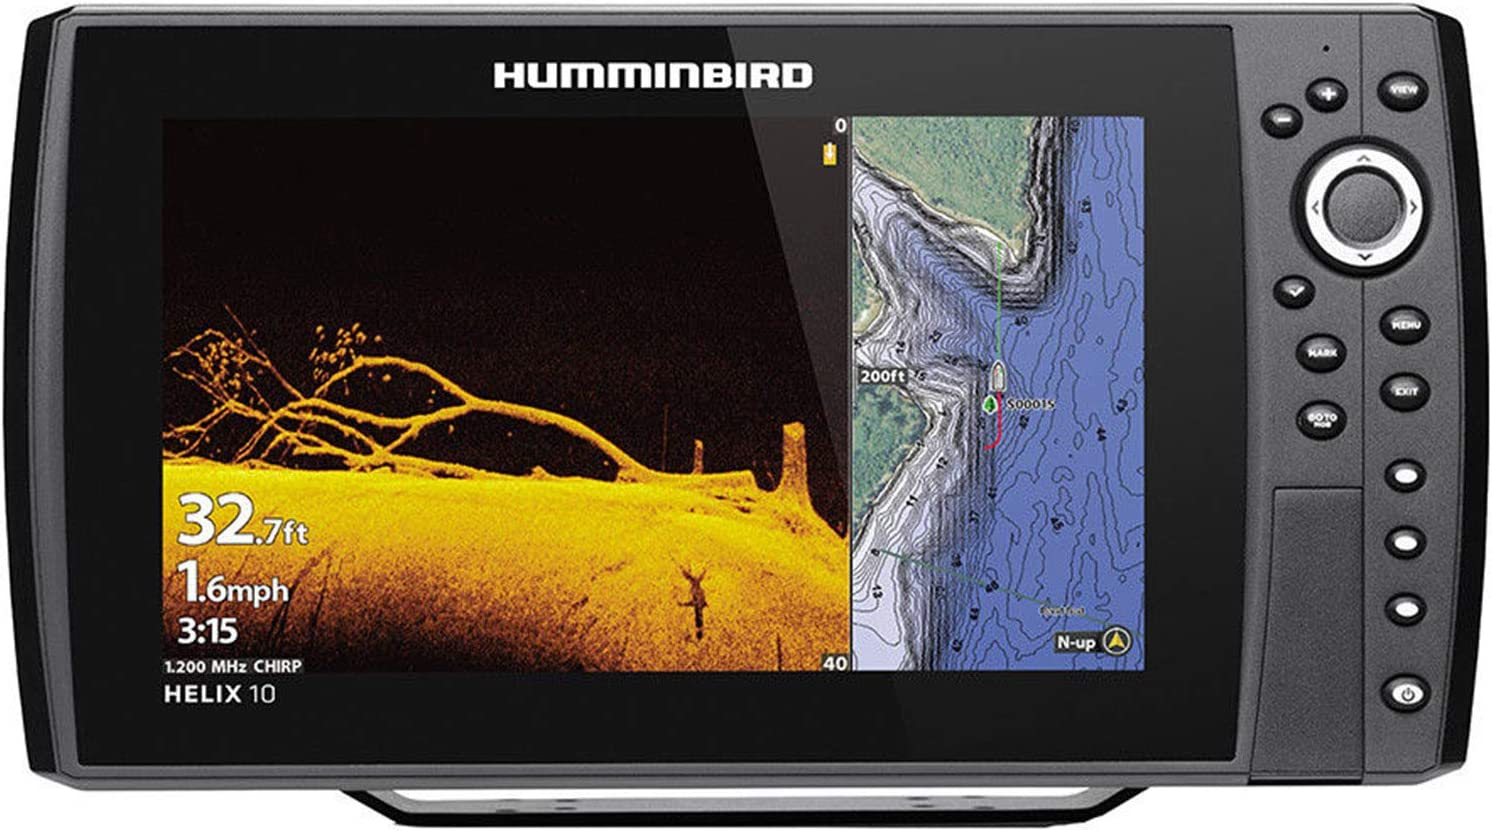 Humminbird Helix 10 Chirp MEGA DI+ GPS G3N CHO Fishfinder with Bluetooth & Ethernet, Black HUM-410880-1CHO